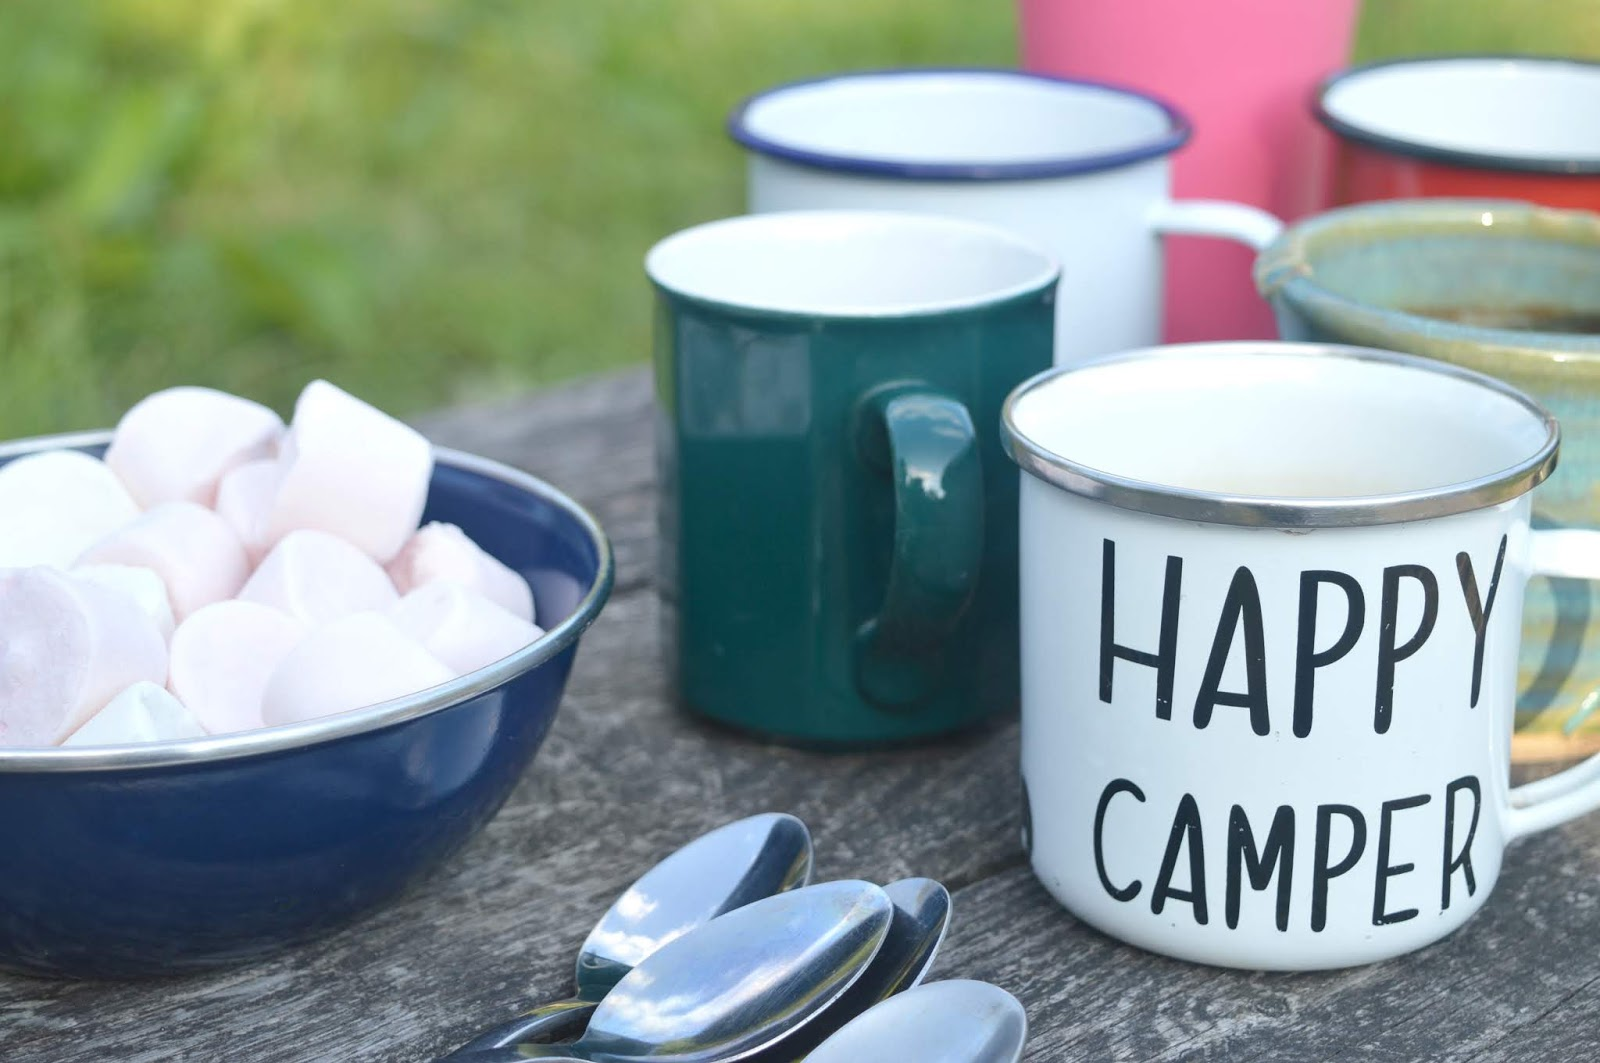 Wild Northumbrian Campsite - Marshmallows